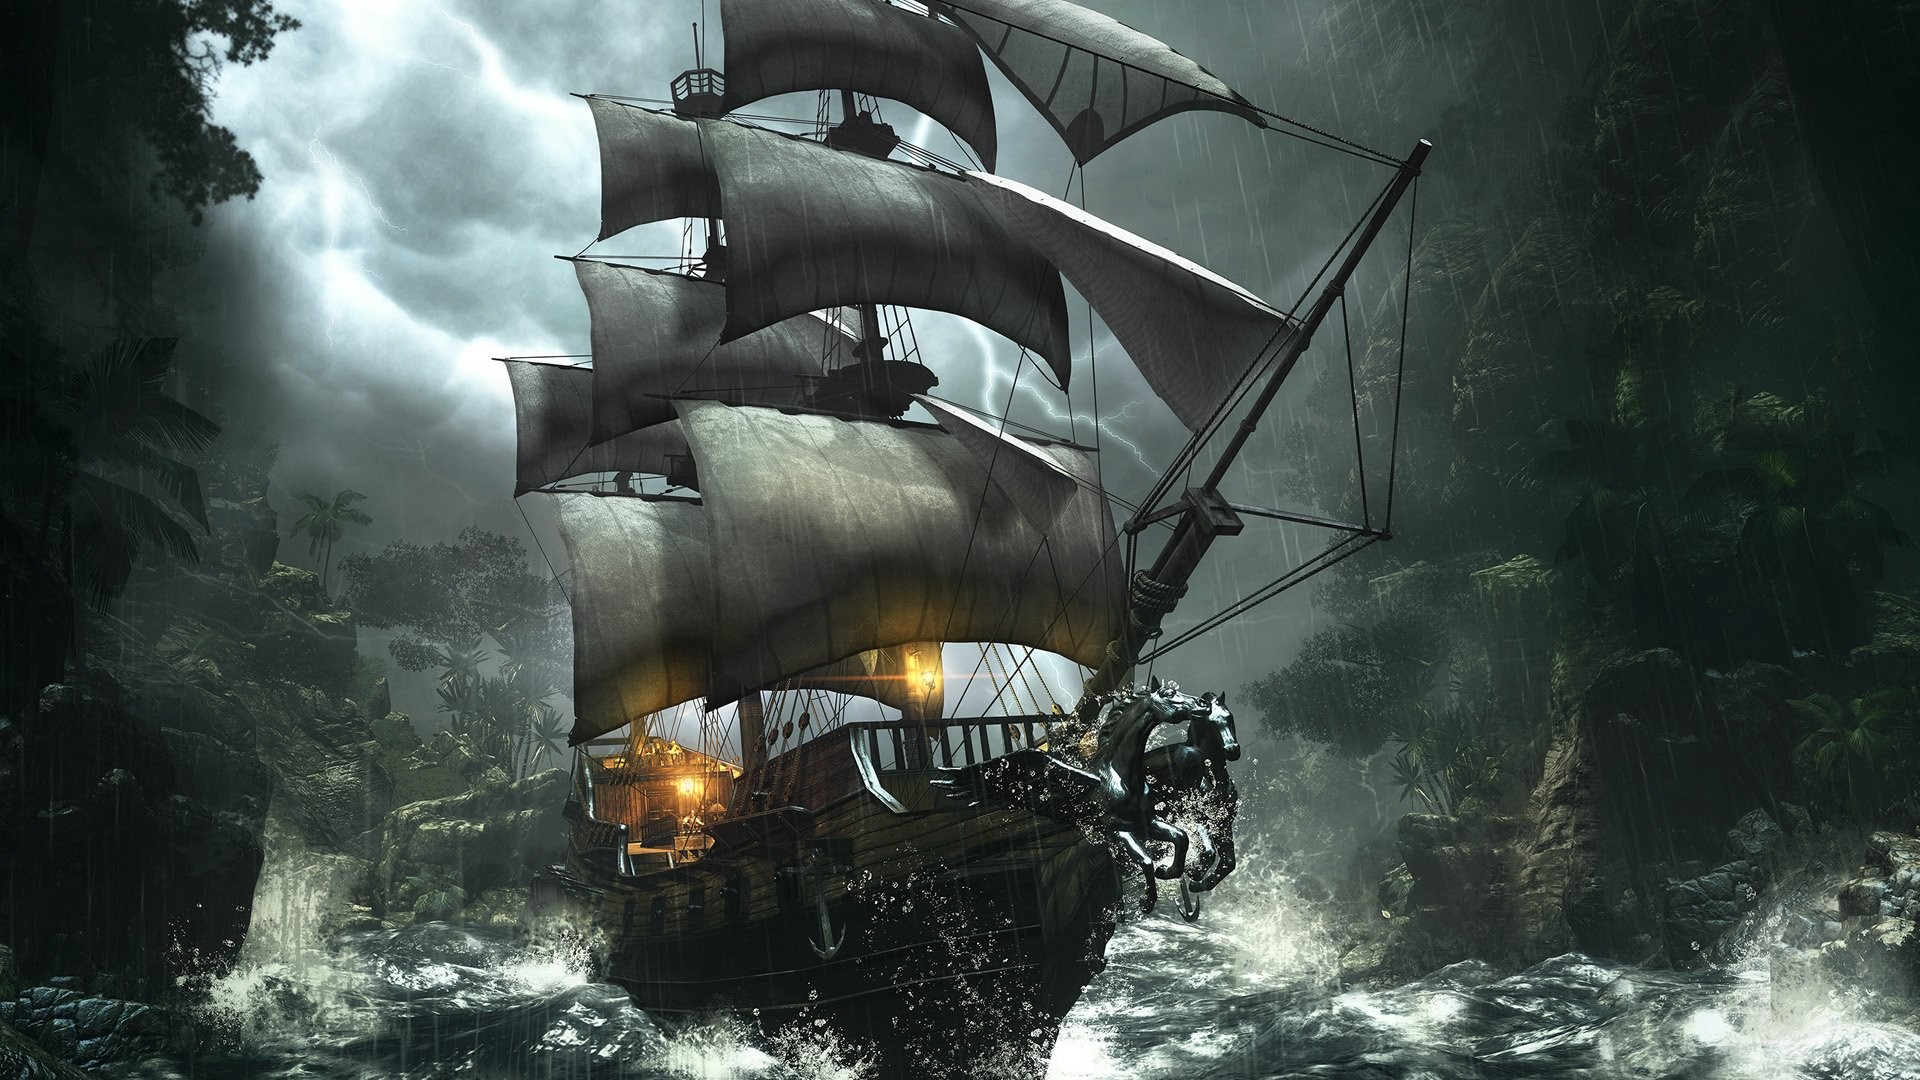 Pirate Ship Wallpaper 82 Images HD Wallpapers Download Free Images Wallpaper [1000image.com]